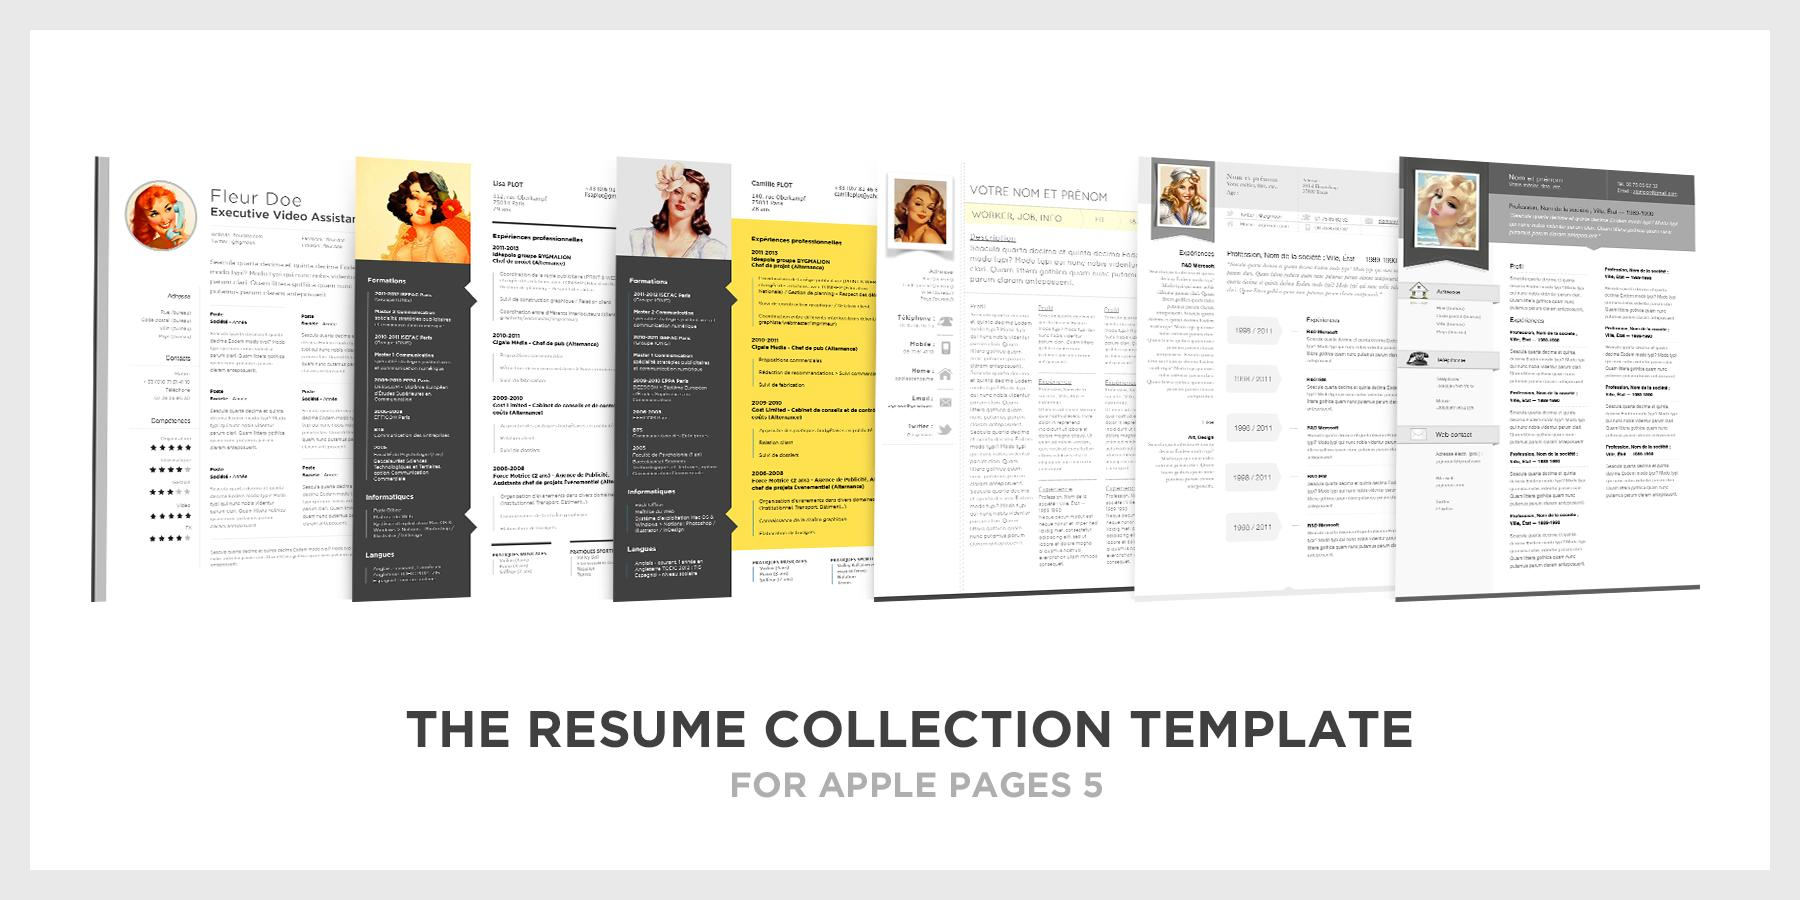 47 Awesome Free Resume Templates For Mac with Design